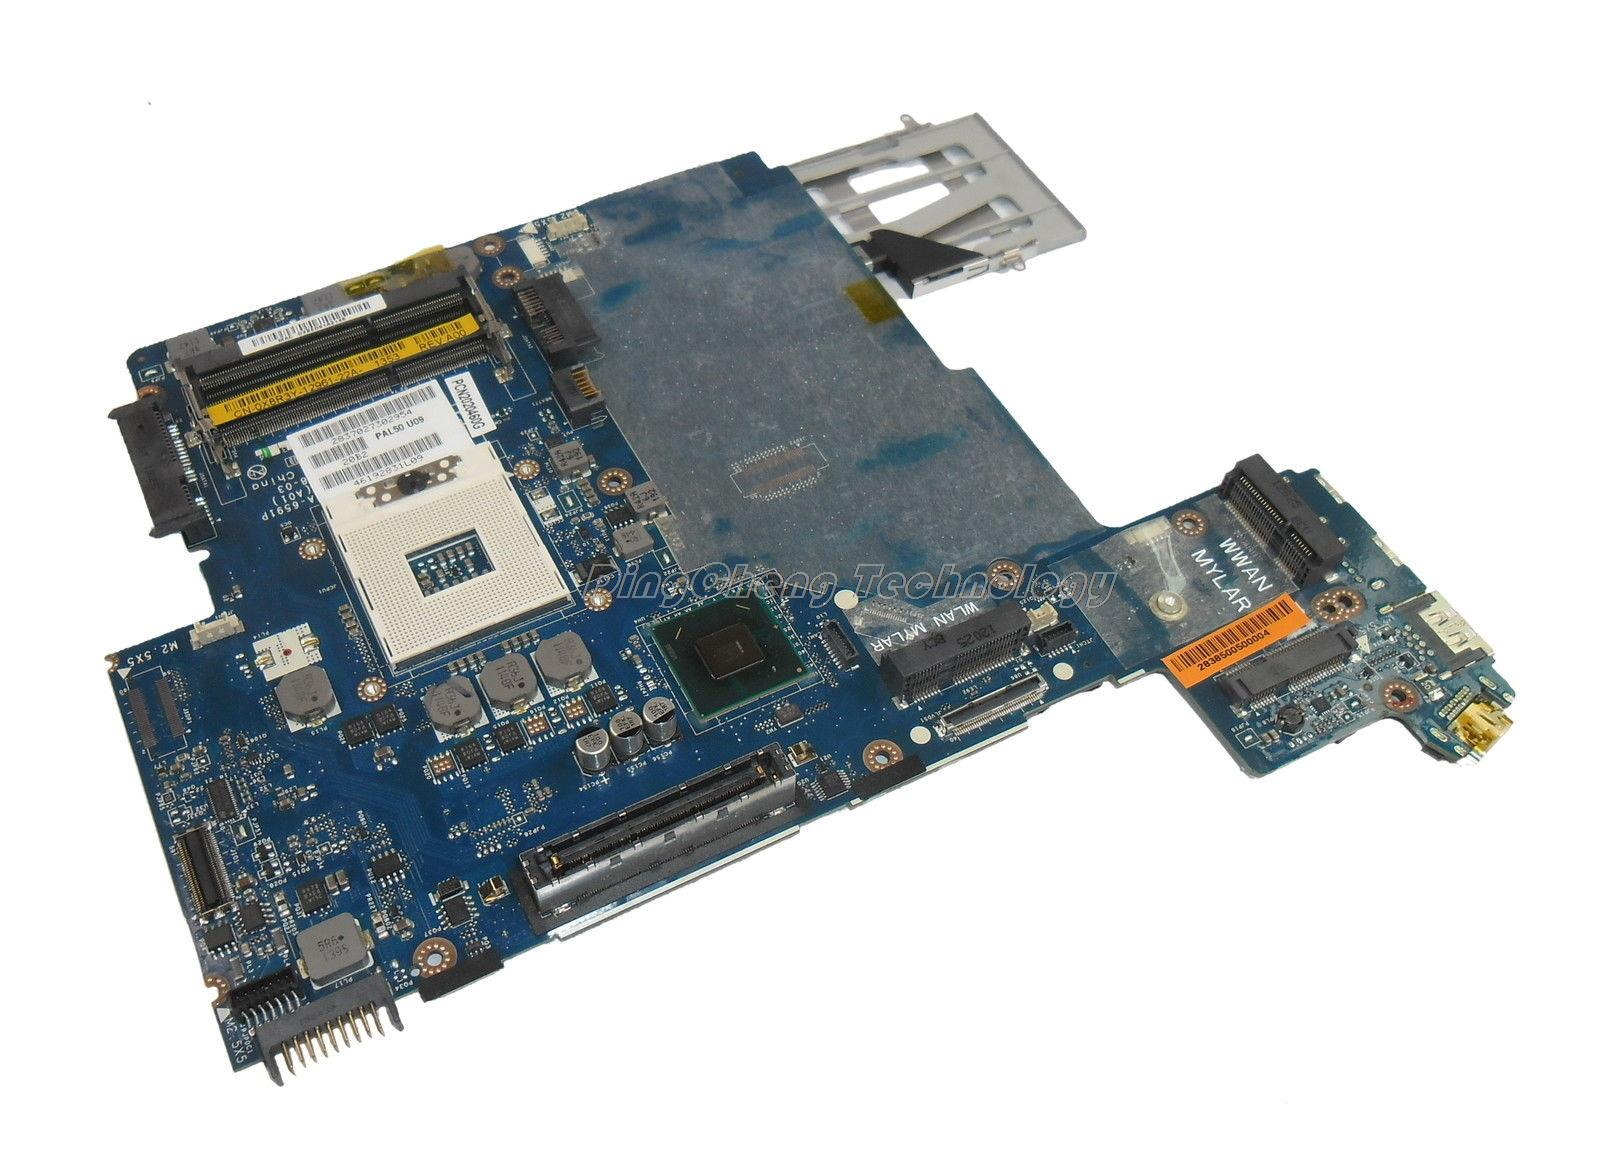 Laptop Motherboard for dell inspiron E6420 LA-6591P CN-07TR3J QM67 DDR3 integrated graphics card 100% tested FullyLaptop Motherboard for dell inspiron E6420 LA-6591P CN-07TR3J QM67 DDR3 integrated graphics card 100% tested Fully